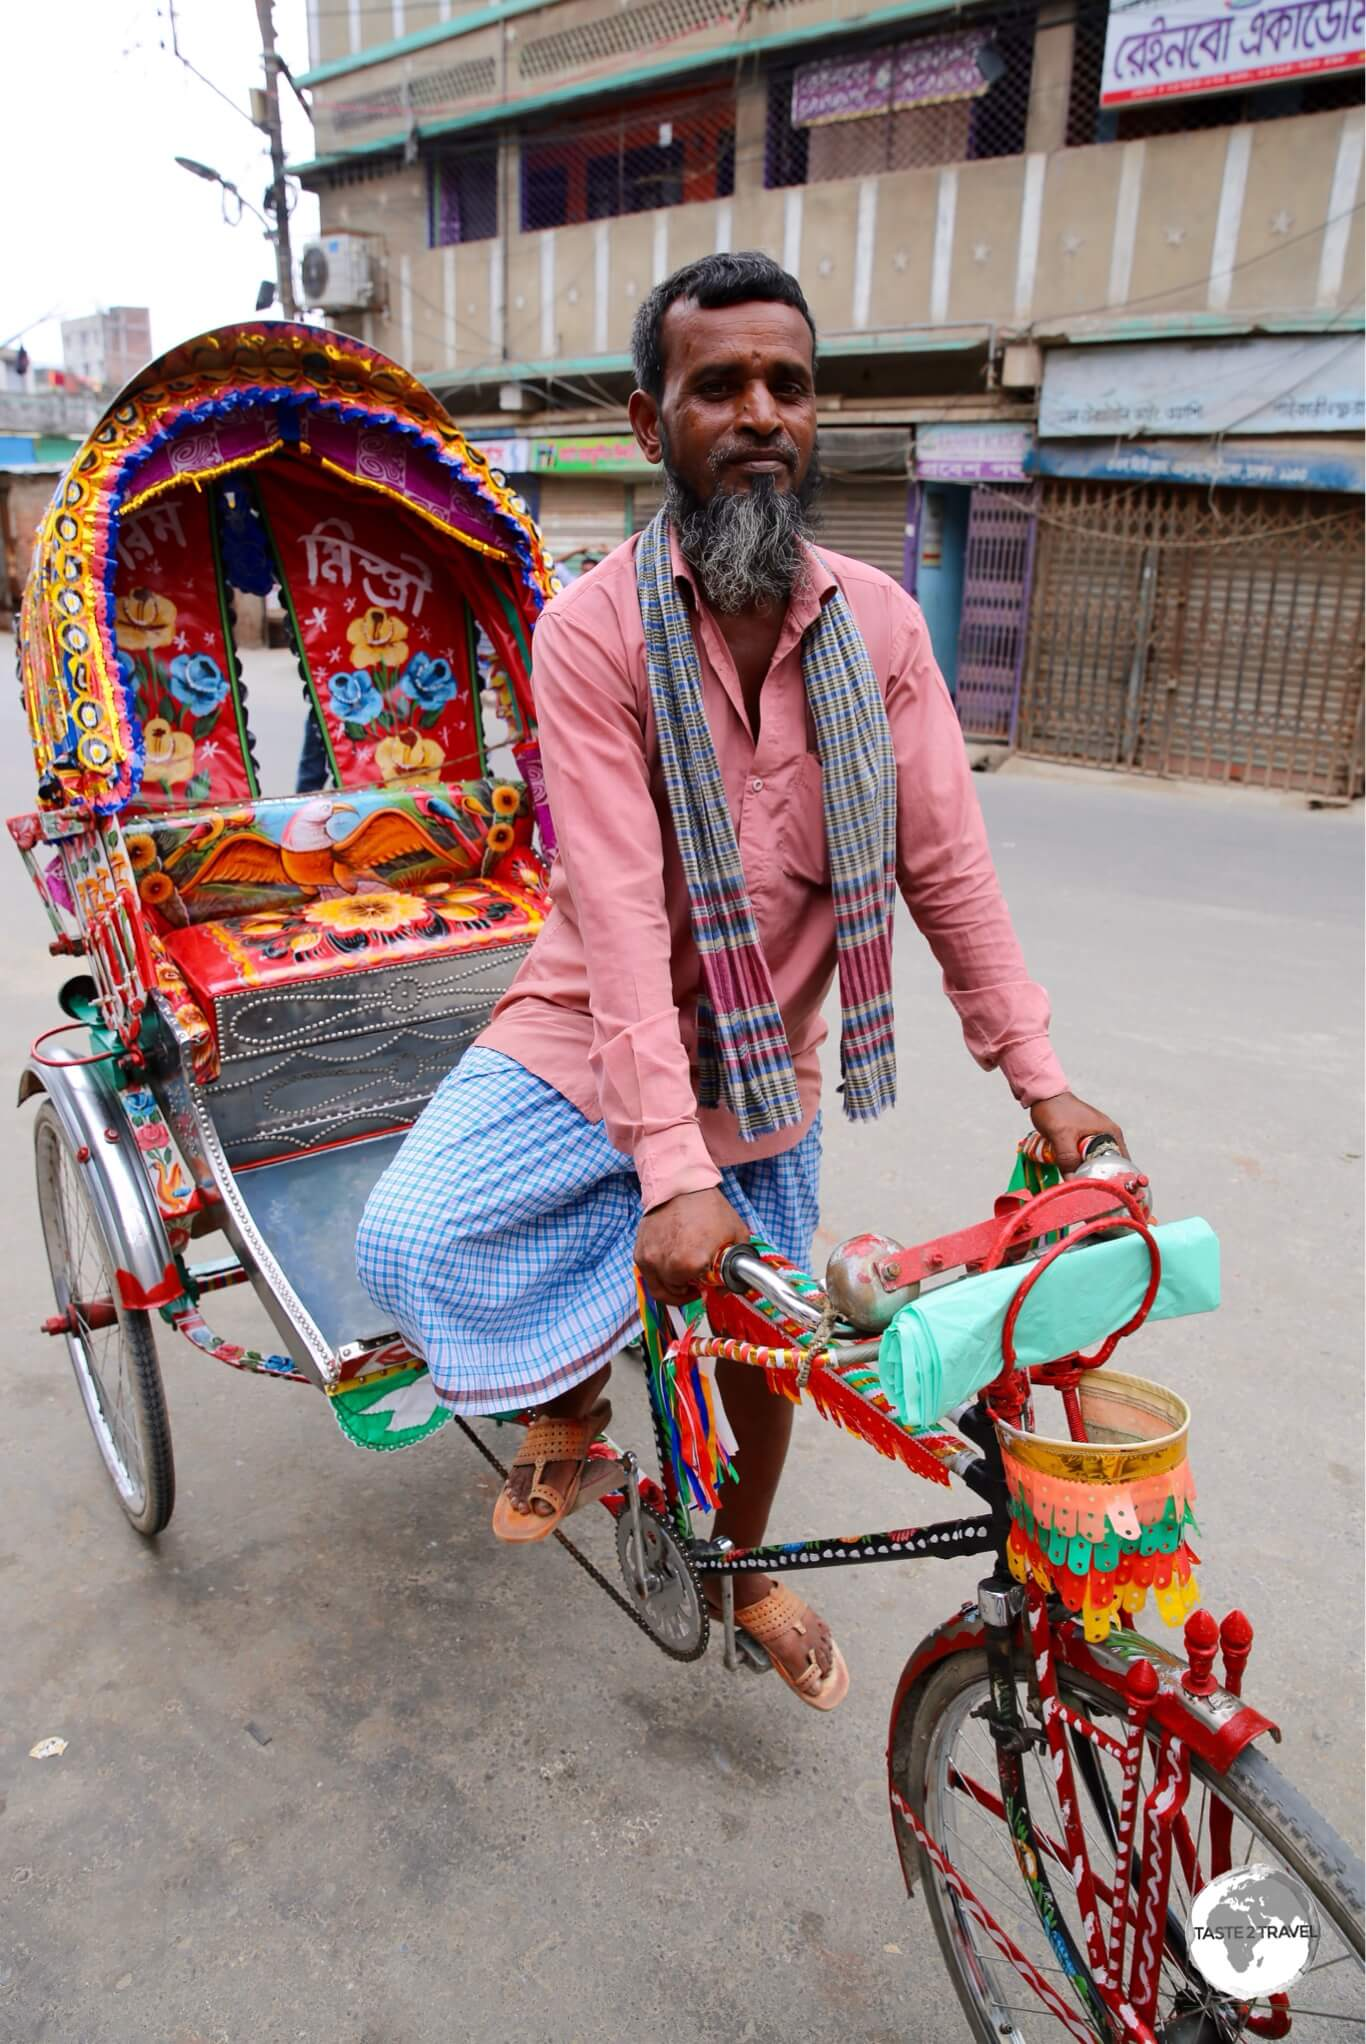 The streets of Dhaka are home to 800,000 cycle rickshaws.